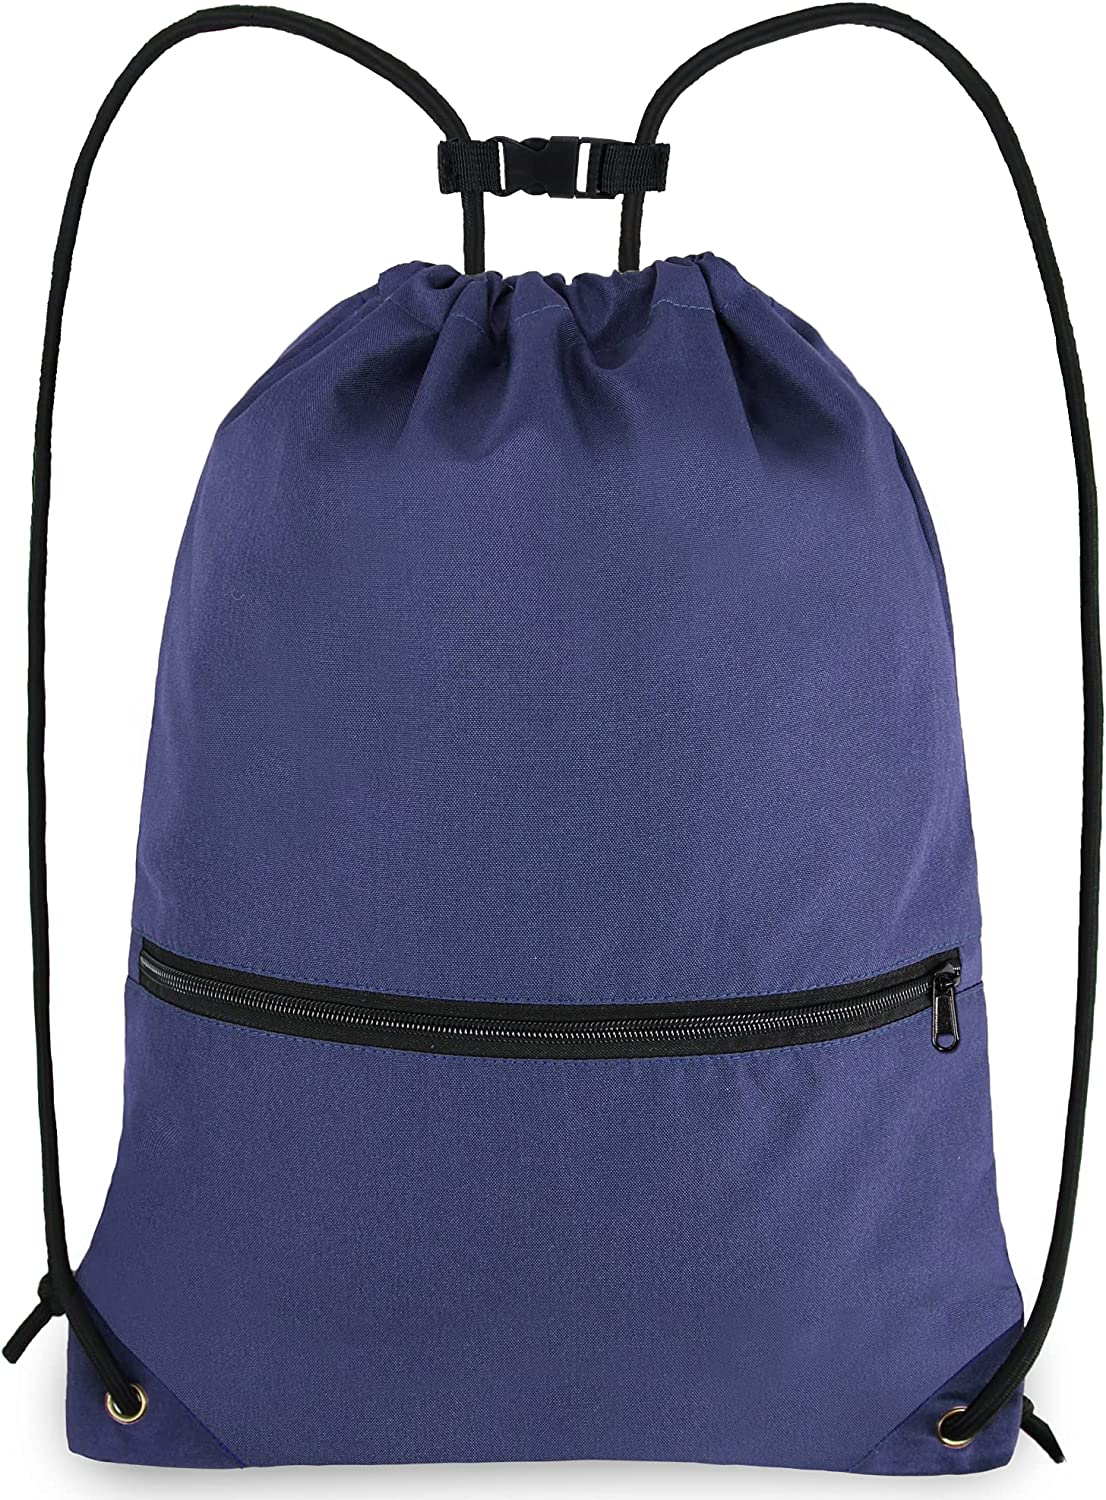 BeeGreen Drawstring Backpack Gym Sports Zipper Front with Po Bag Superlatite Deluxe